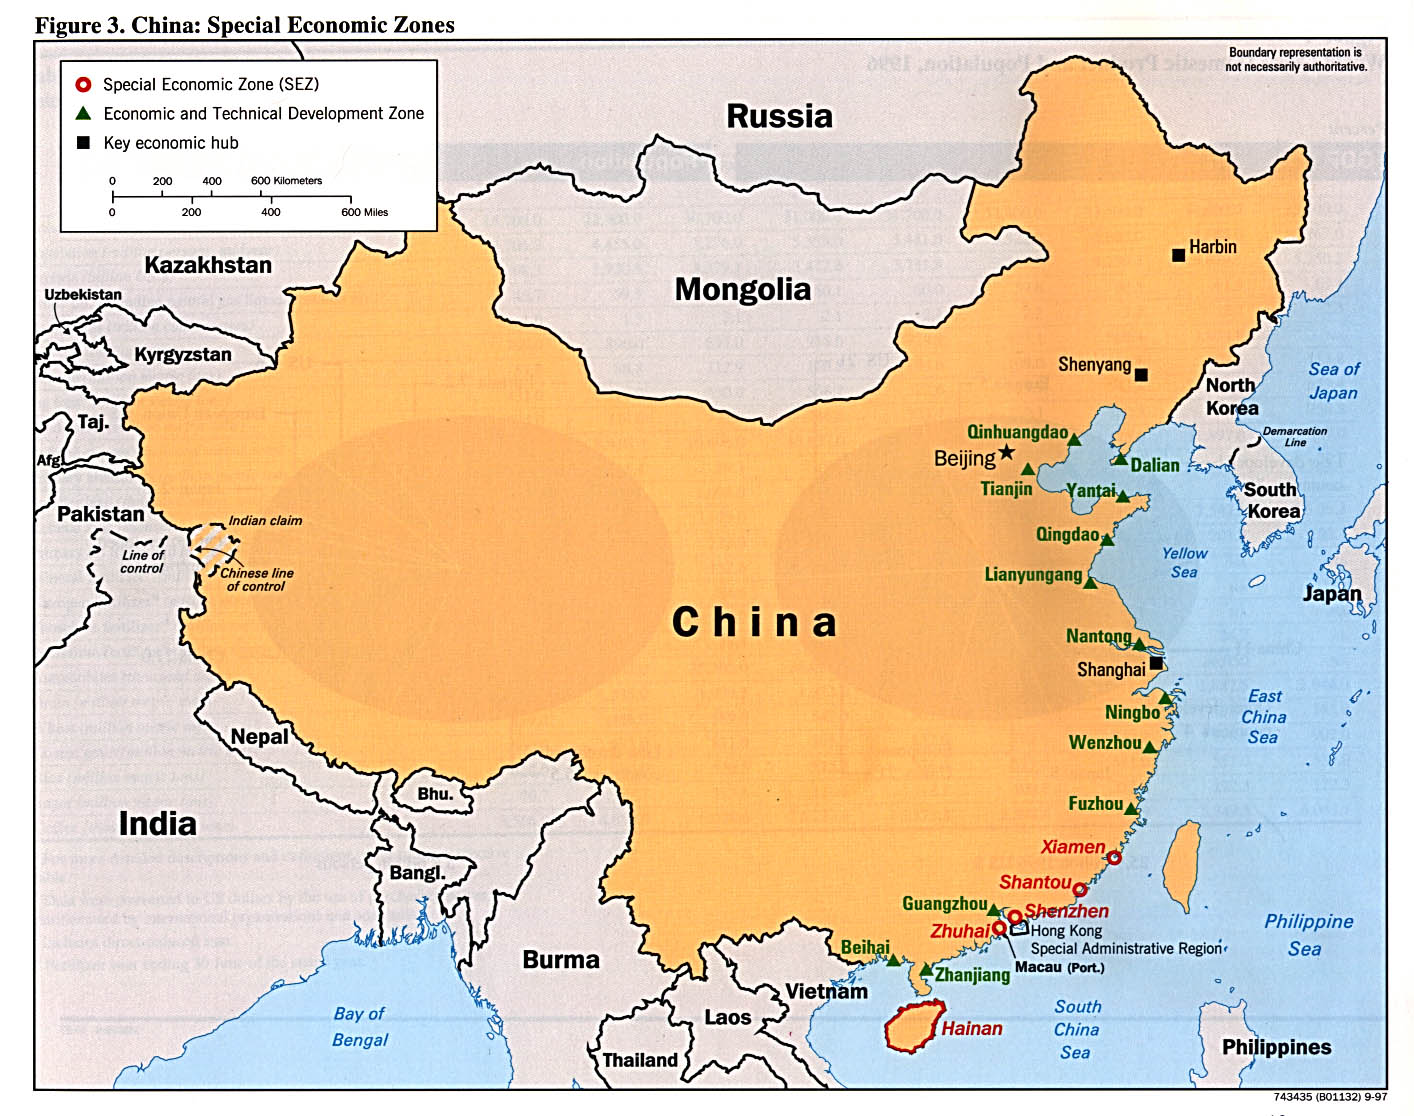 http://www.populationdata.net/images/cartes/asie/extreme-orient/chine/chine_zes.jpg